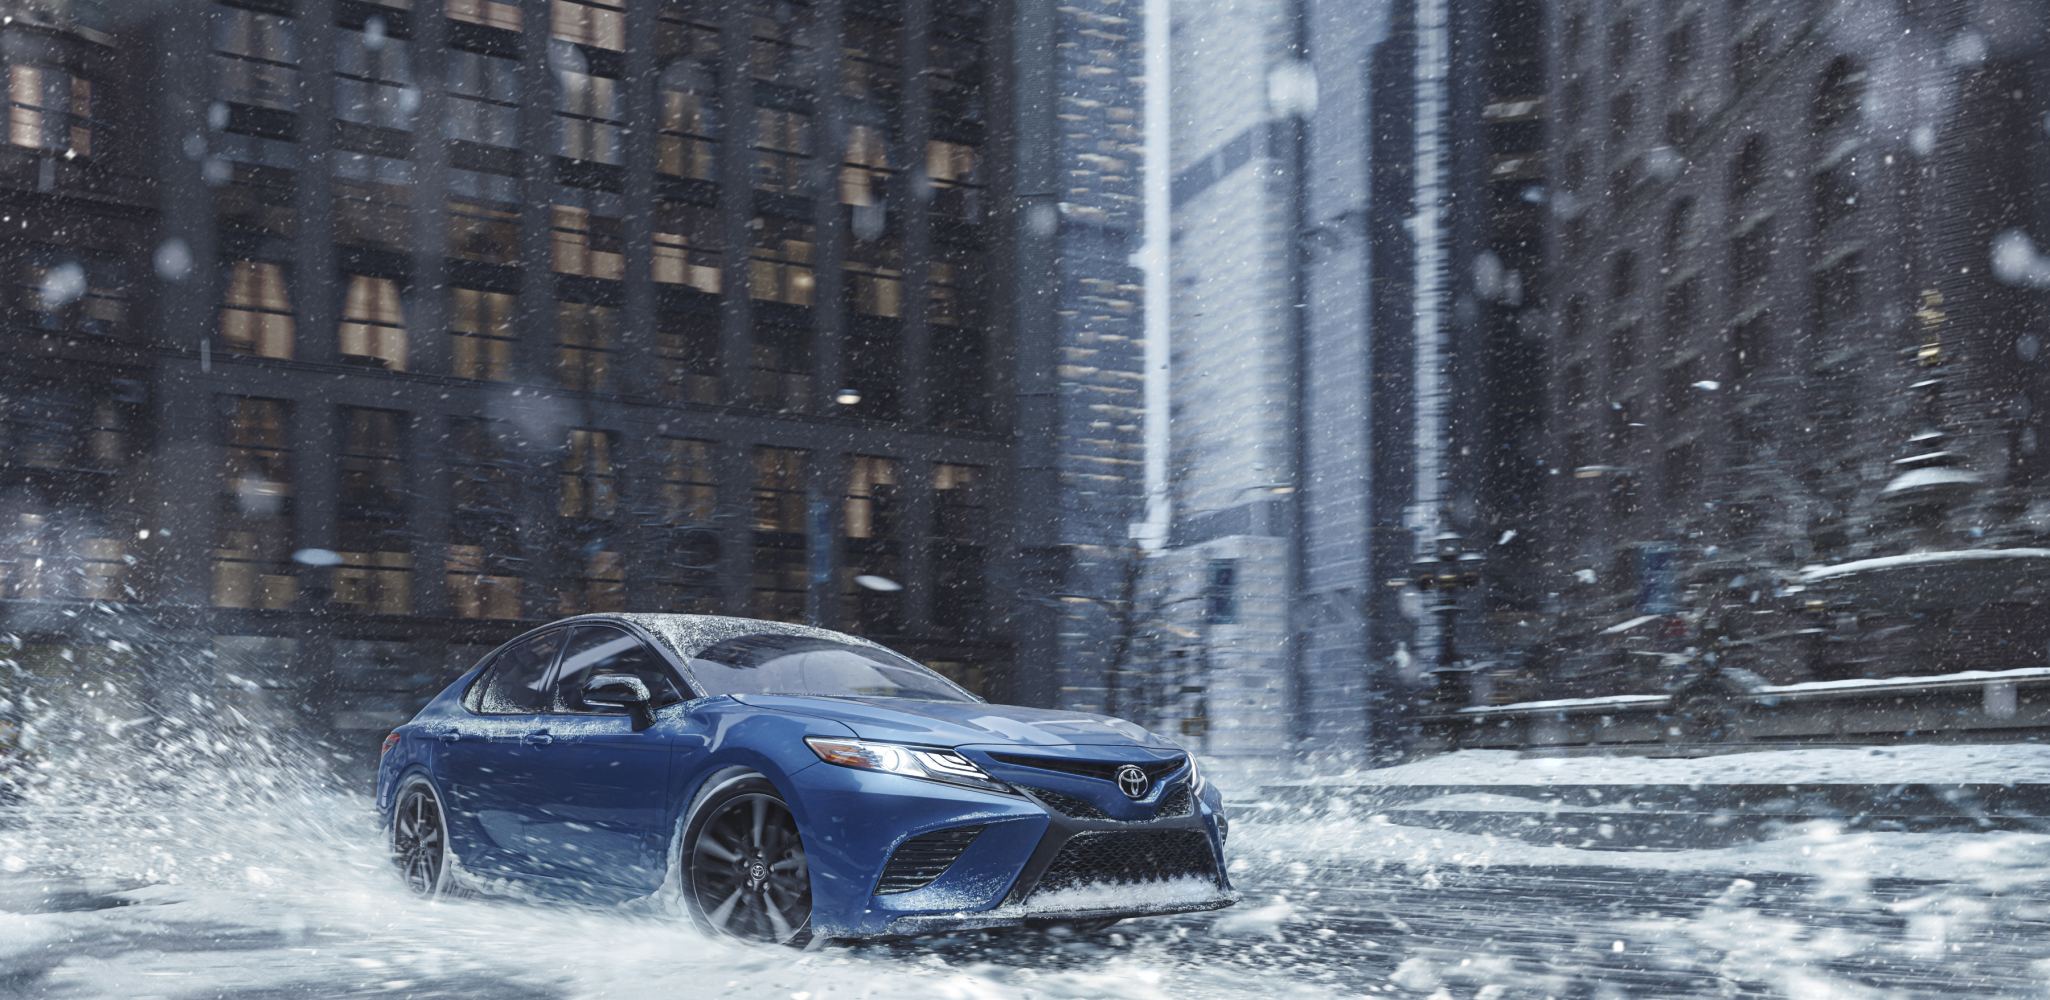 Get A Grip: Toyota Introduces New Camry and Avalon All-Wheel Drive Sedans